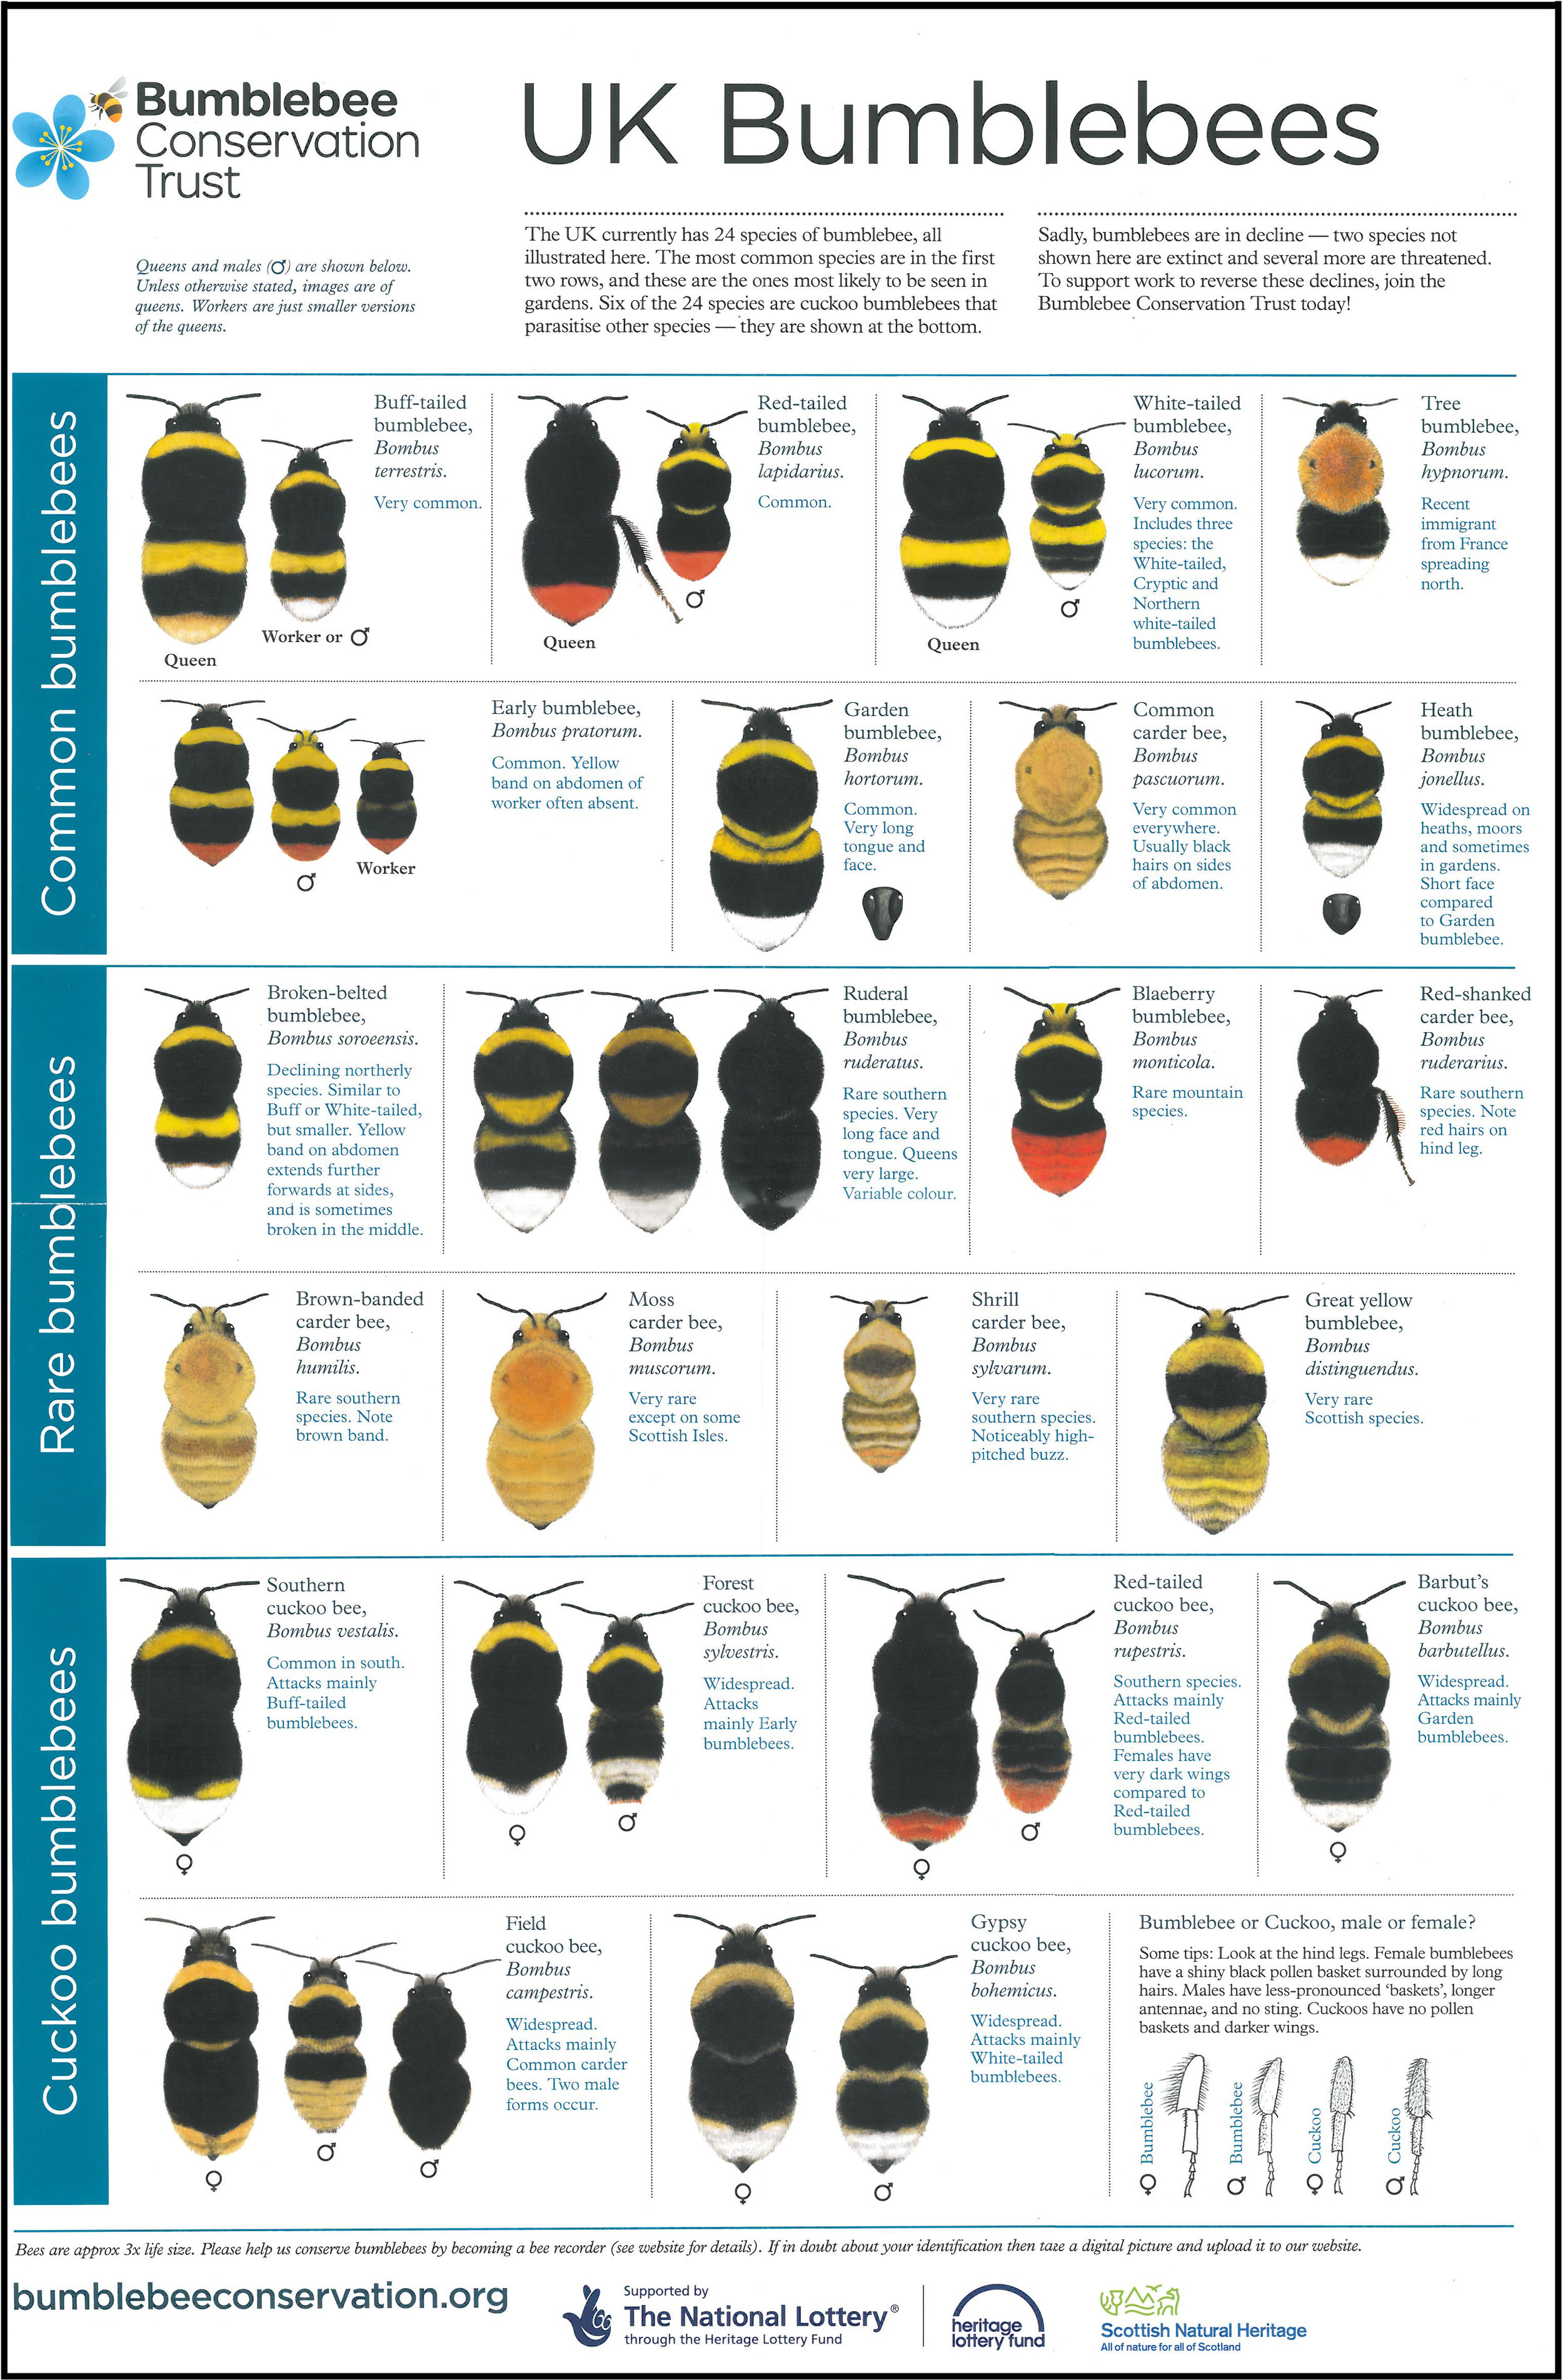 Poster by Bumblebee Conservation Trust